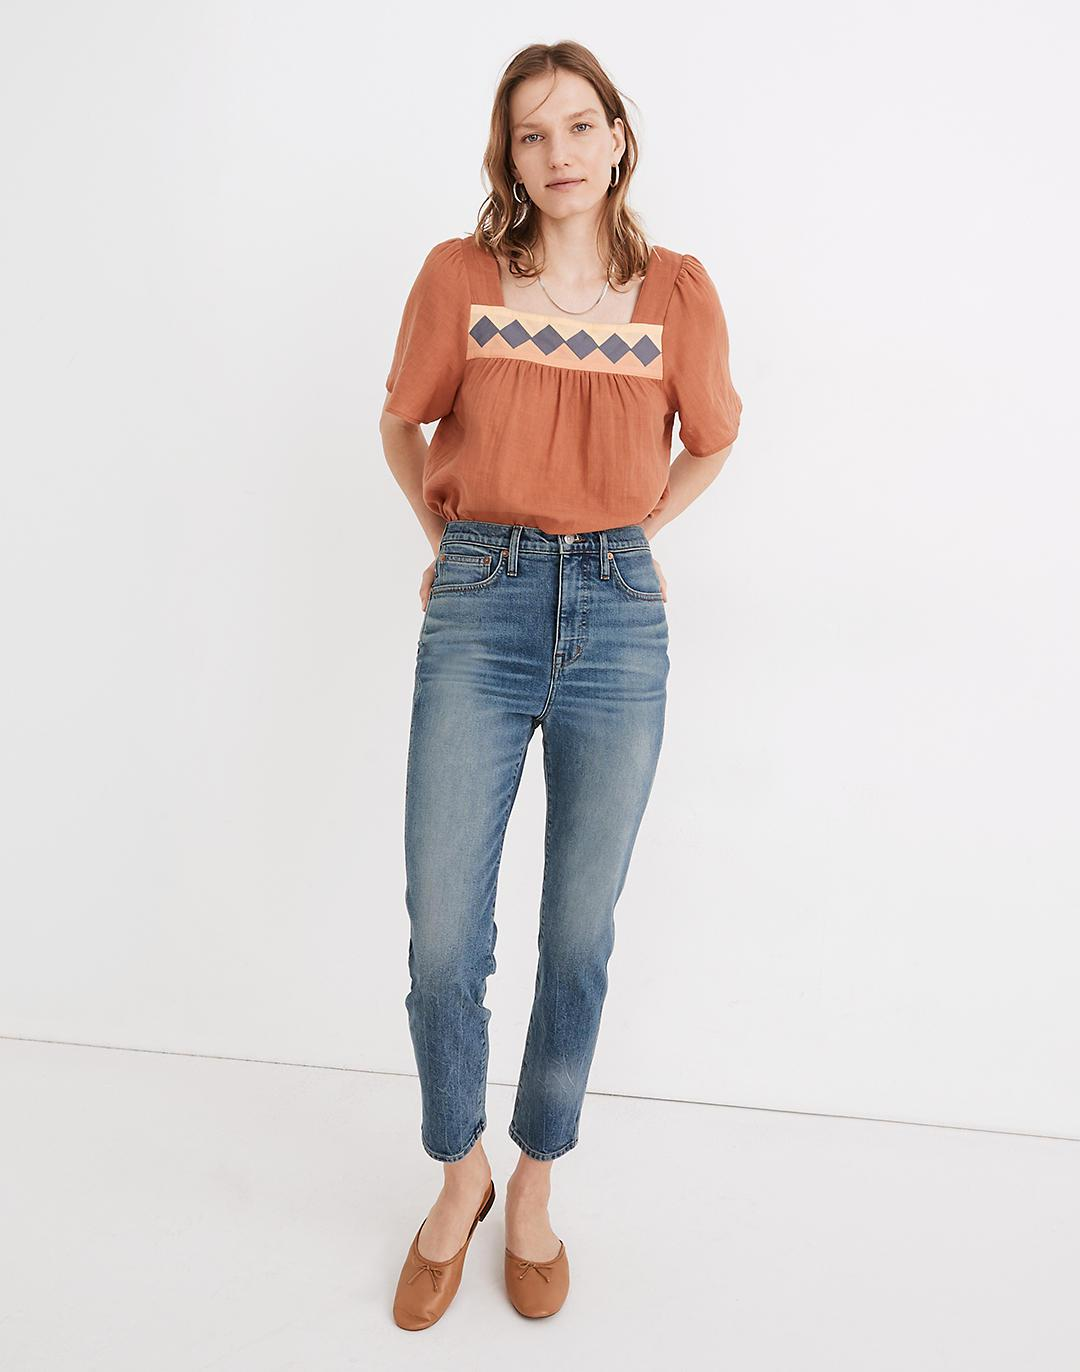 Rivet & Thread High-Rise Stovepipe Jeans in Keyes Wash